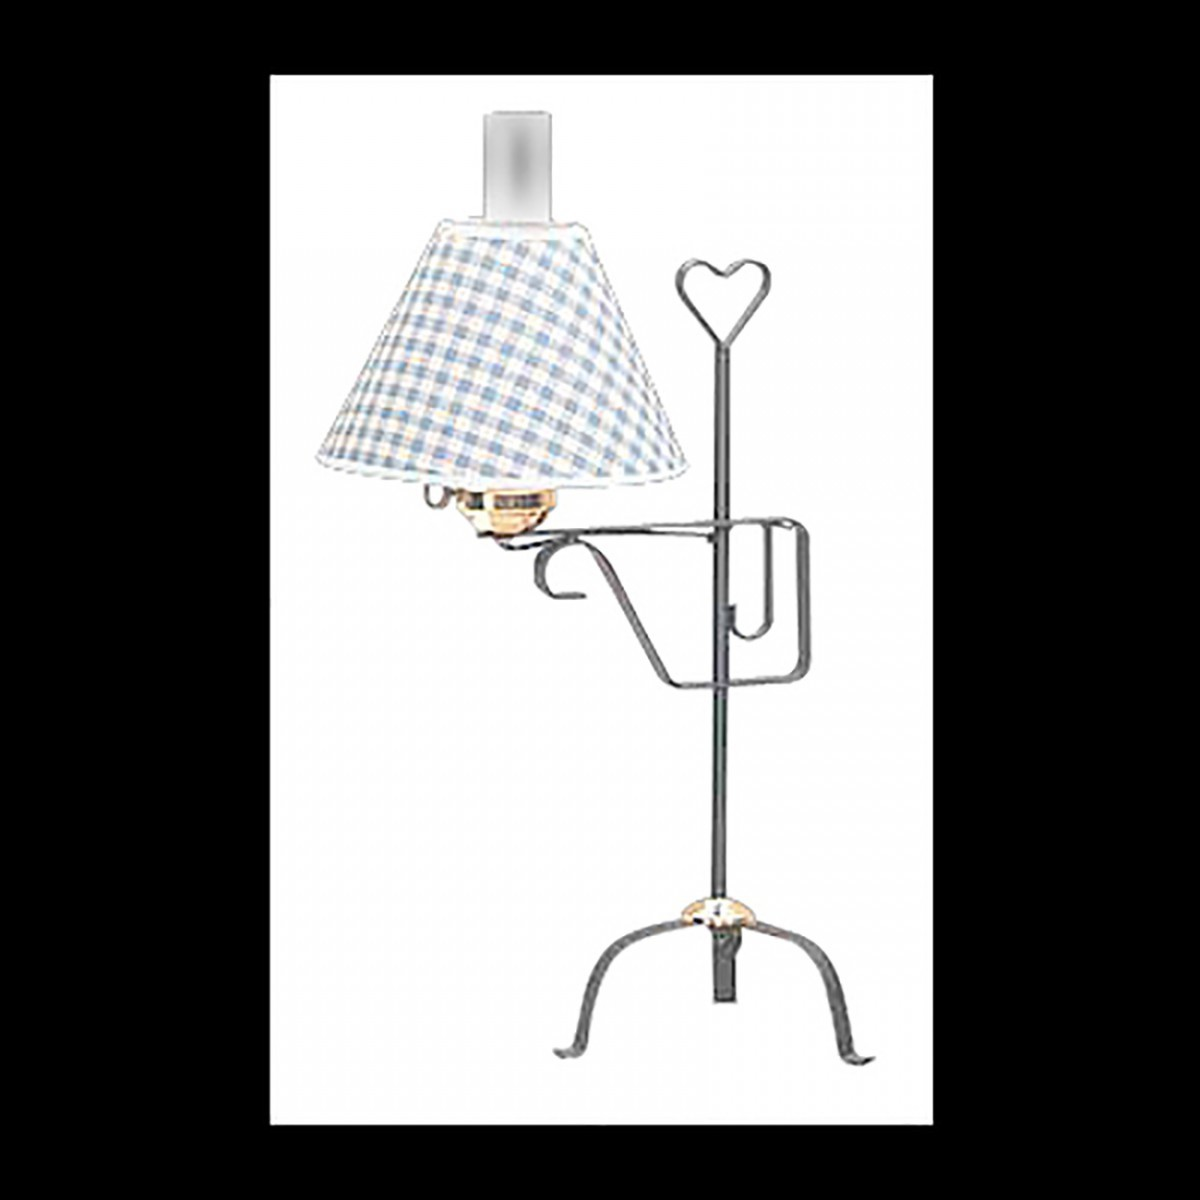 4 Table Lamp Black Wrought Iron Blue Shade Lamp Table Lights Lamps